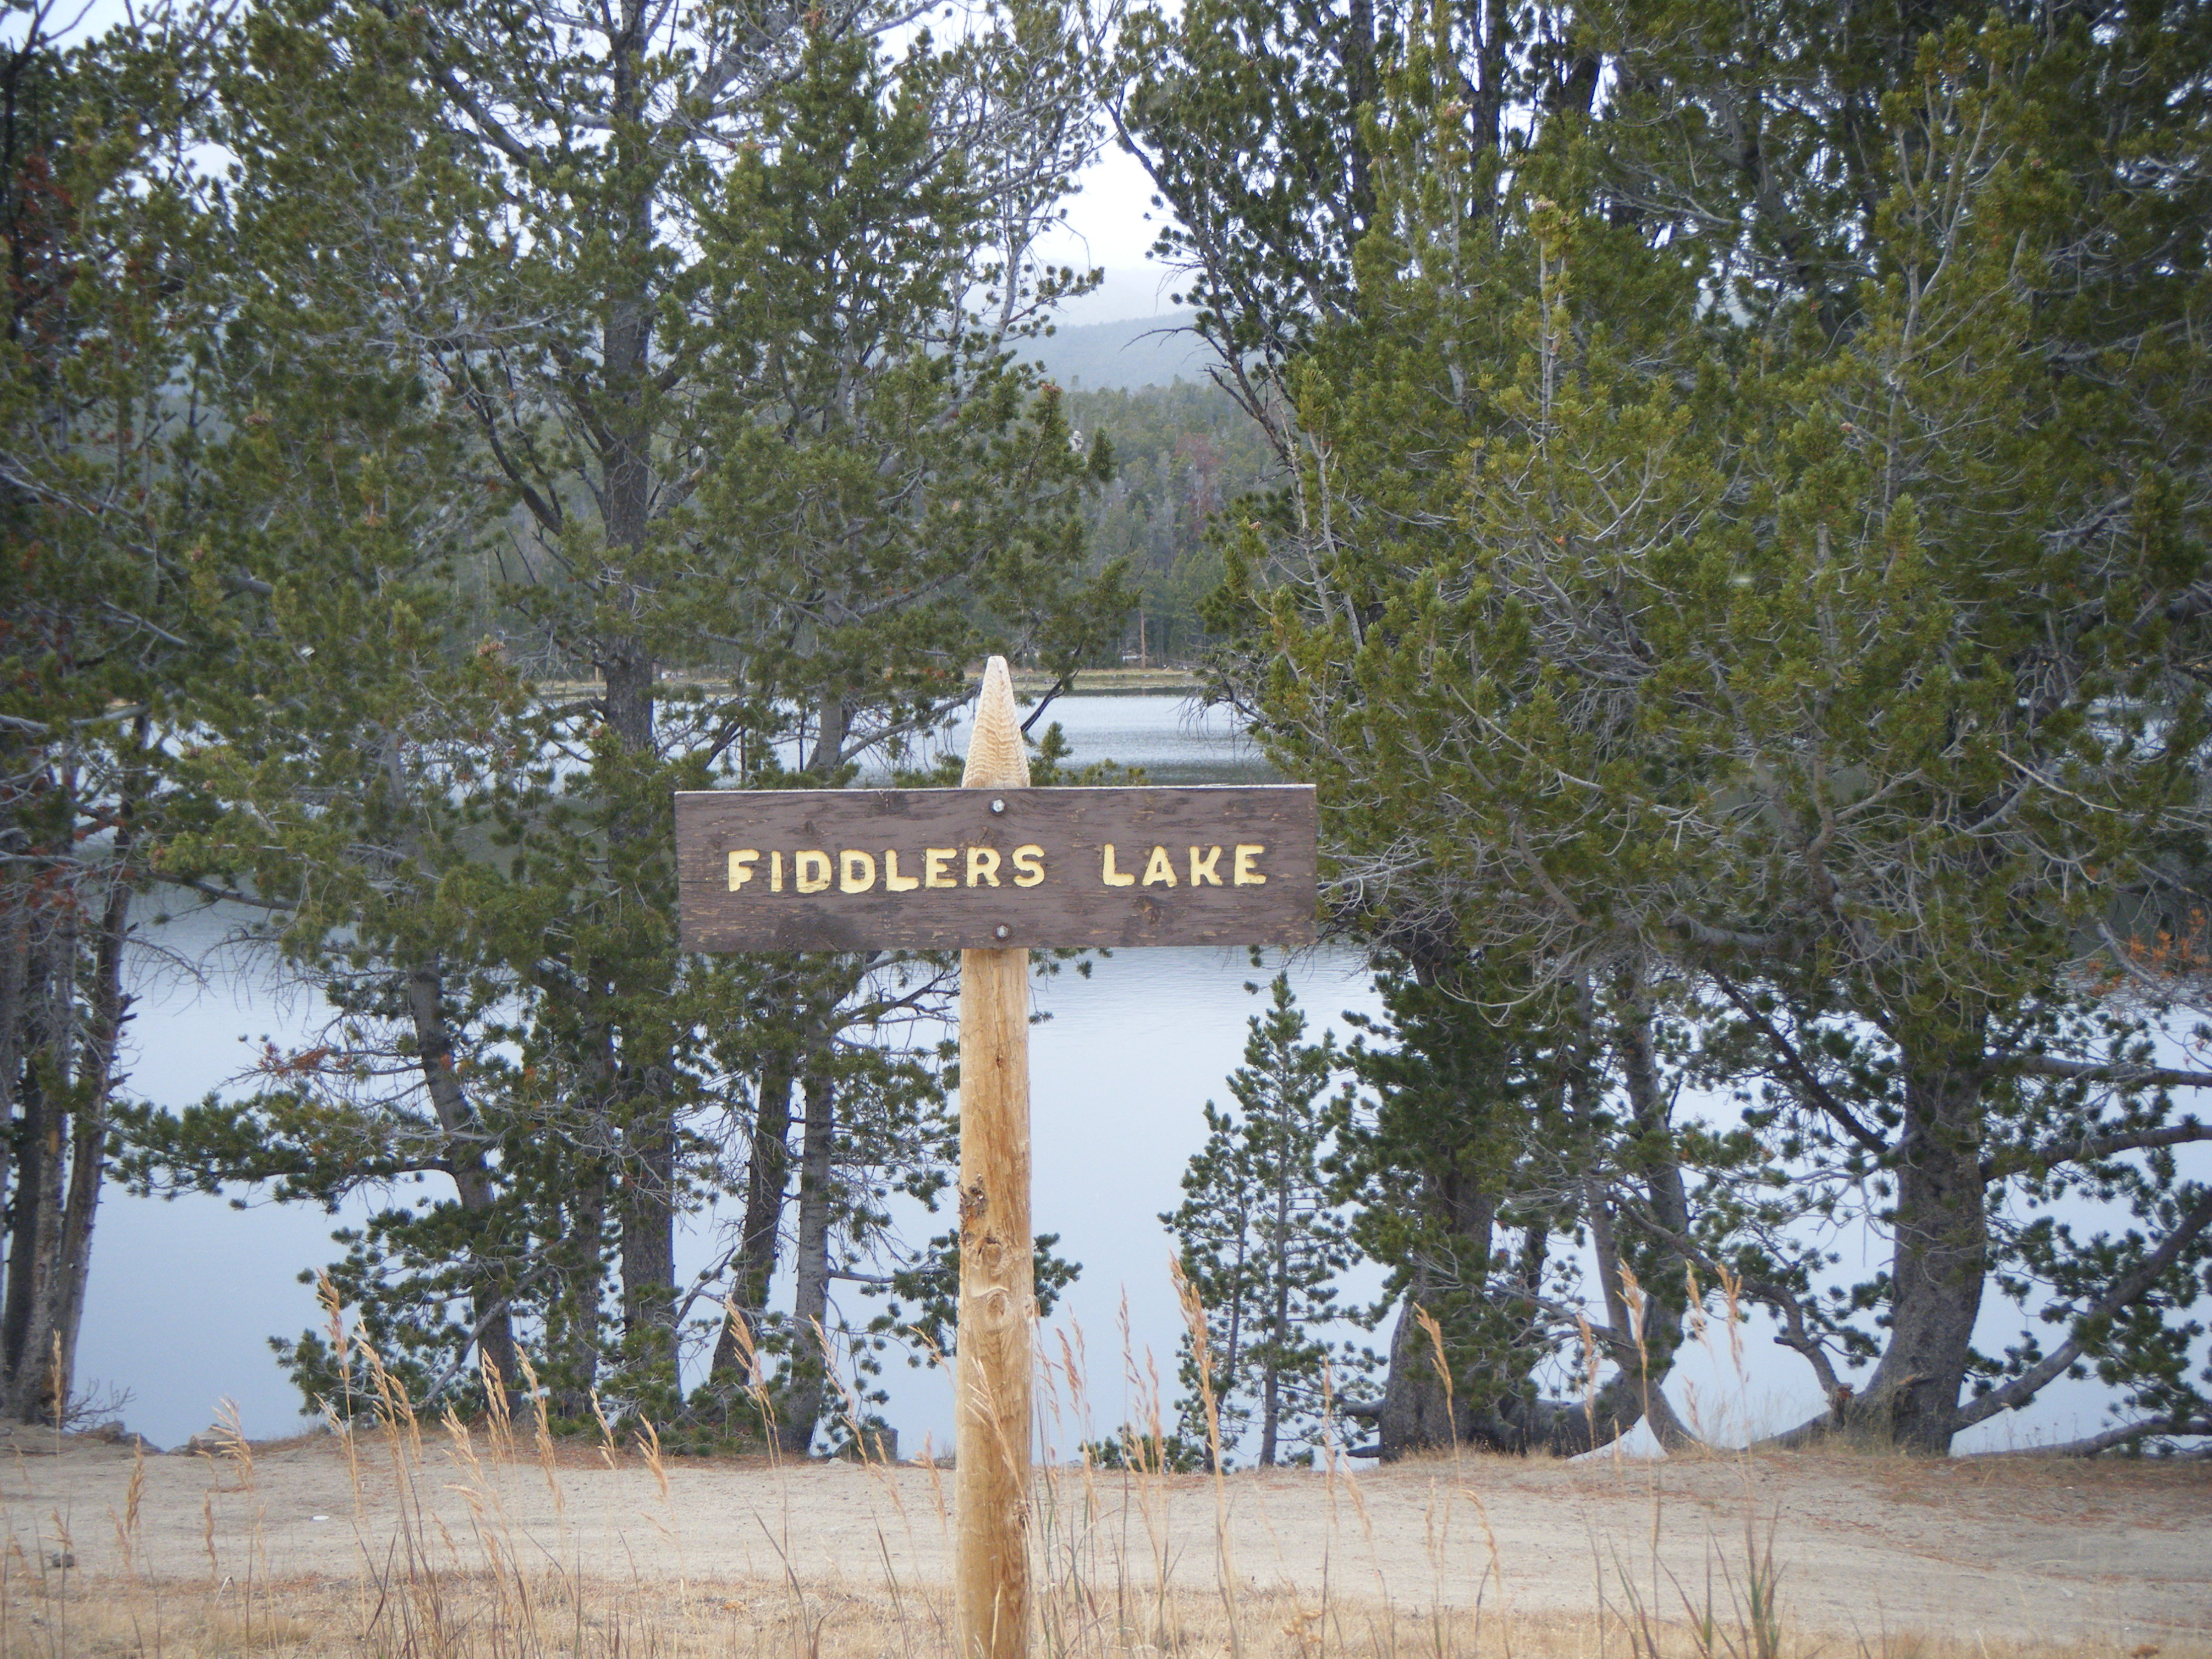 Photograph of Fiddlers Lake